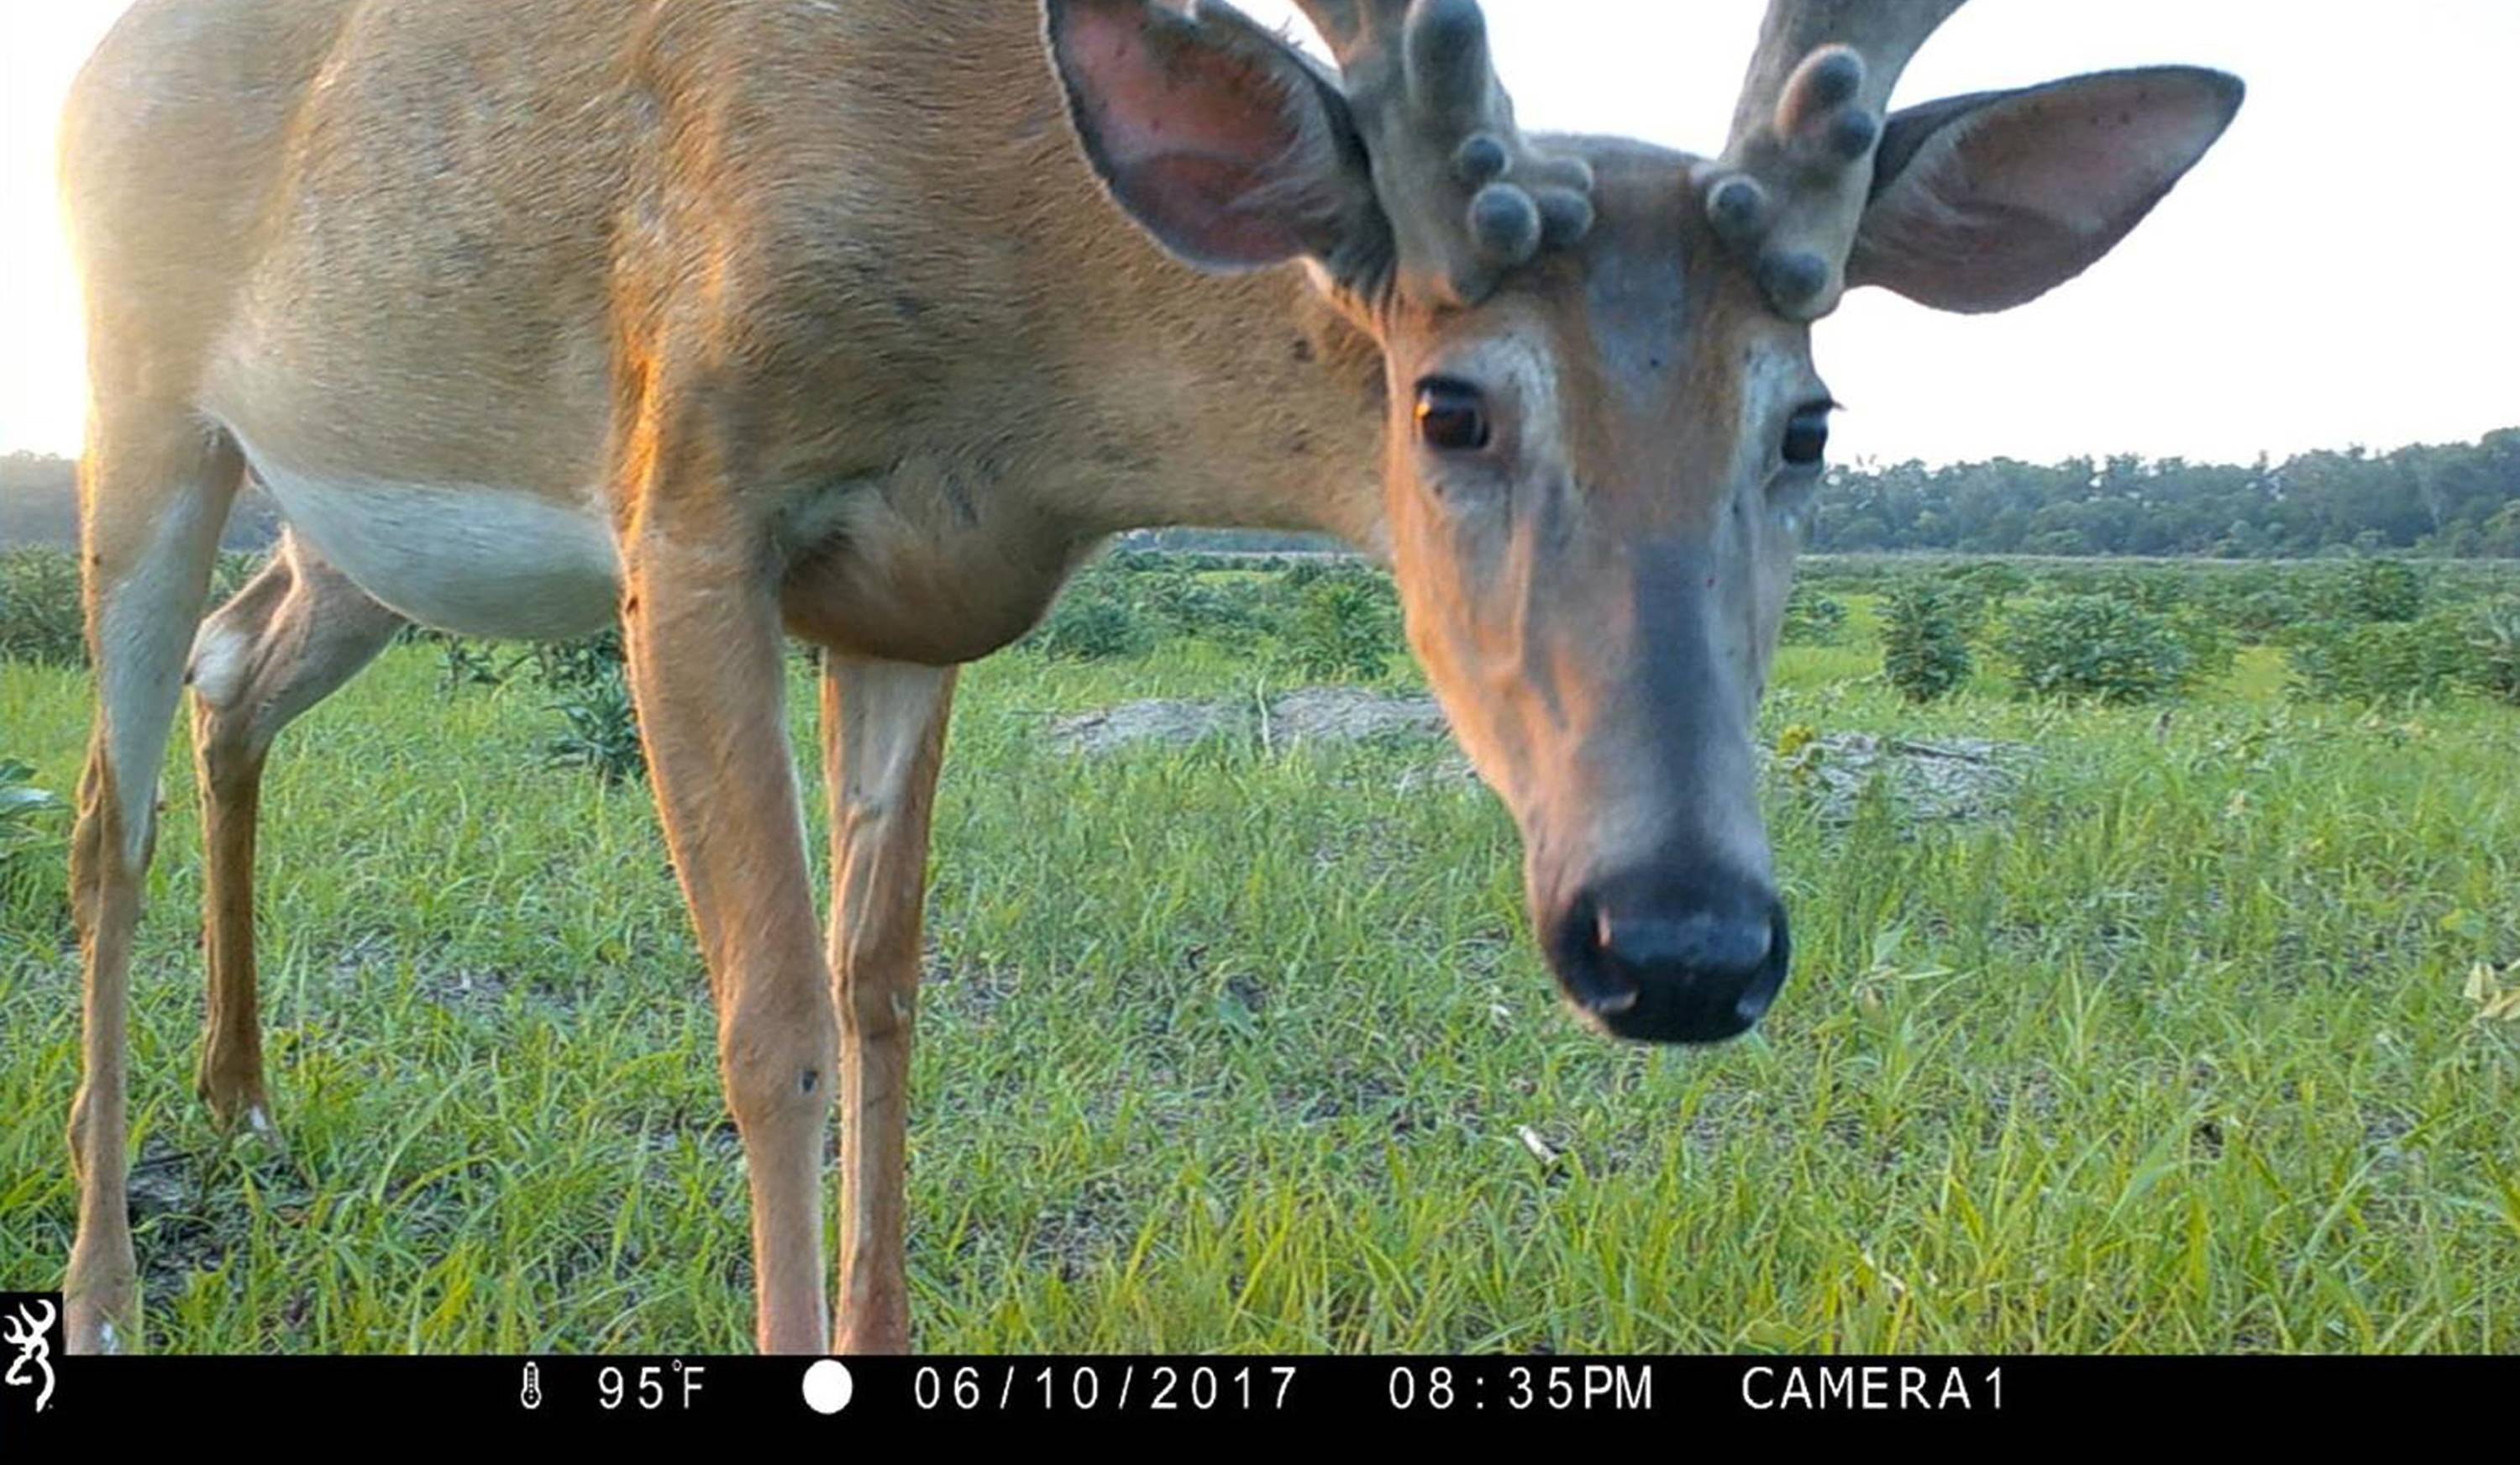 This 2017 photo from a U.S. Fish and Wildlife Service motion-activated camera shows a deer at the DeSoto National Wildlife Refuge in Nebraska. Motion-detecting wildlife cameras are yielding serious science as well as amusing photos.